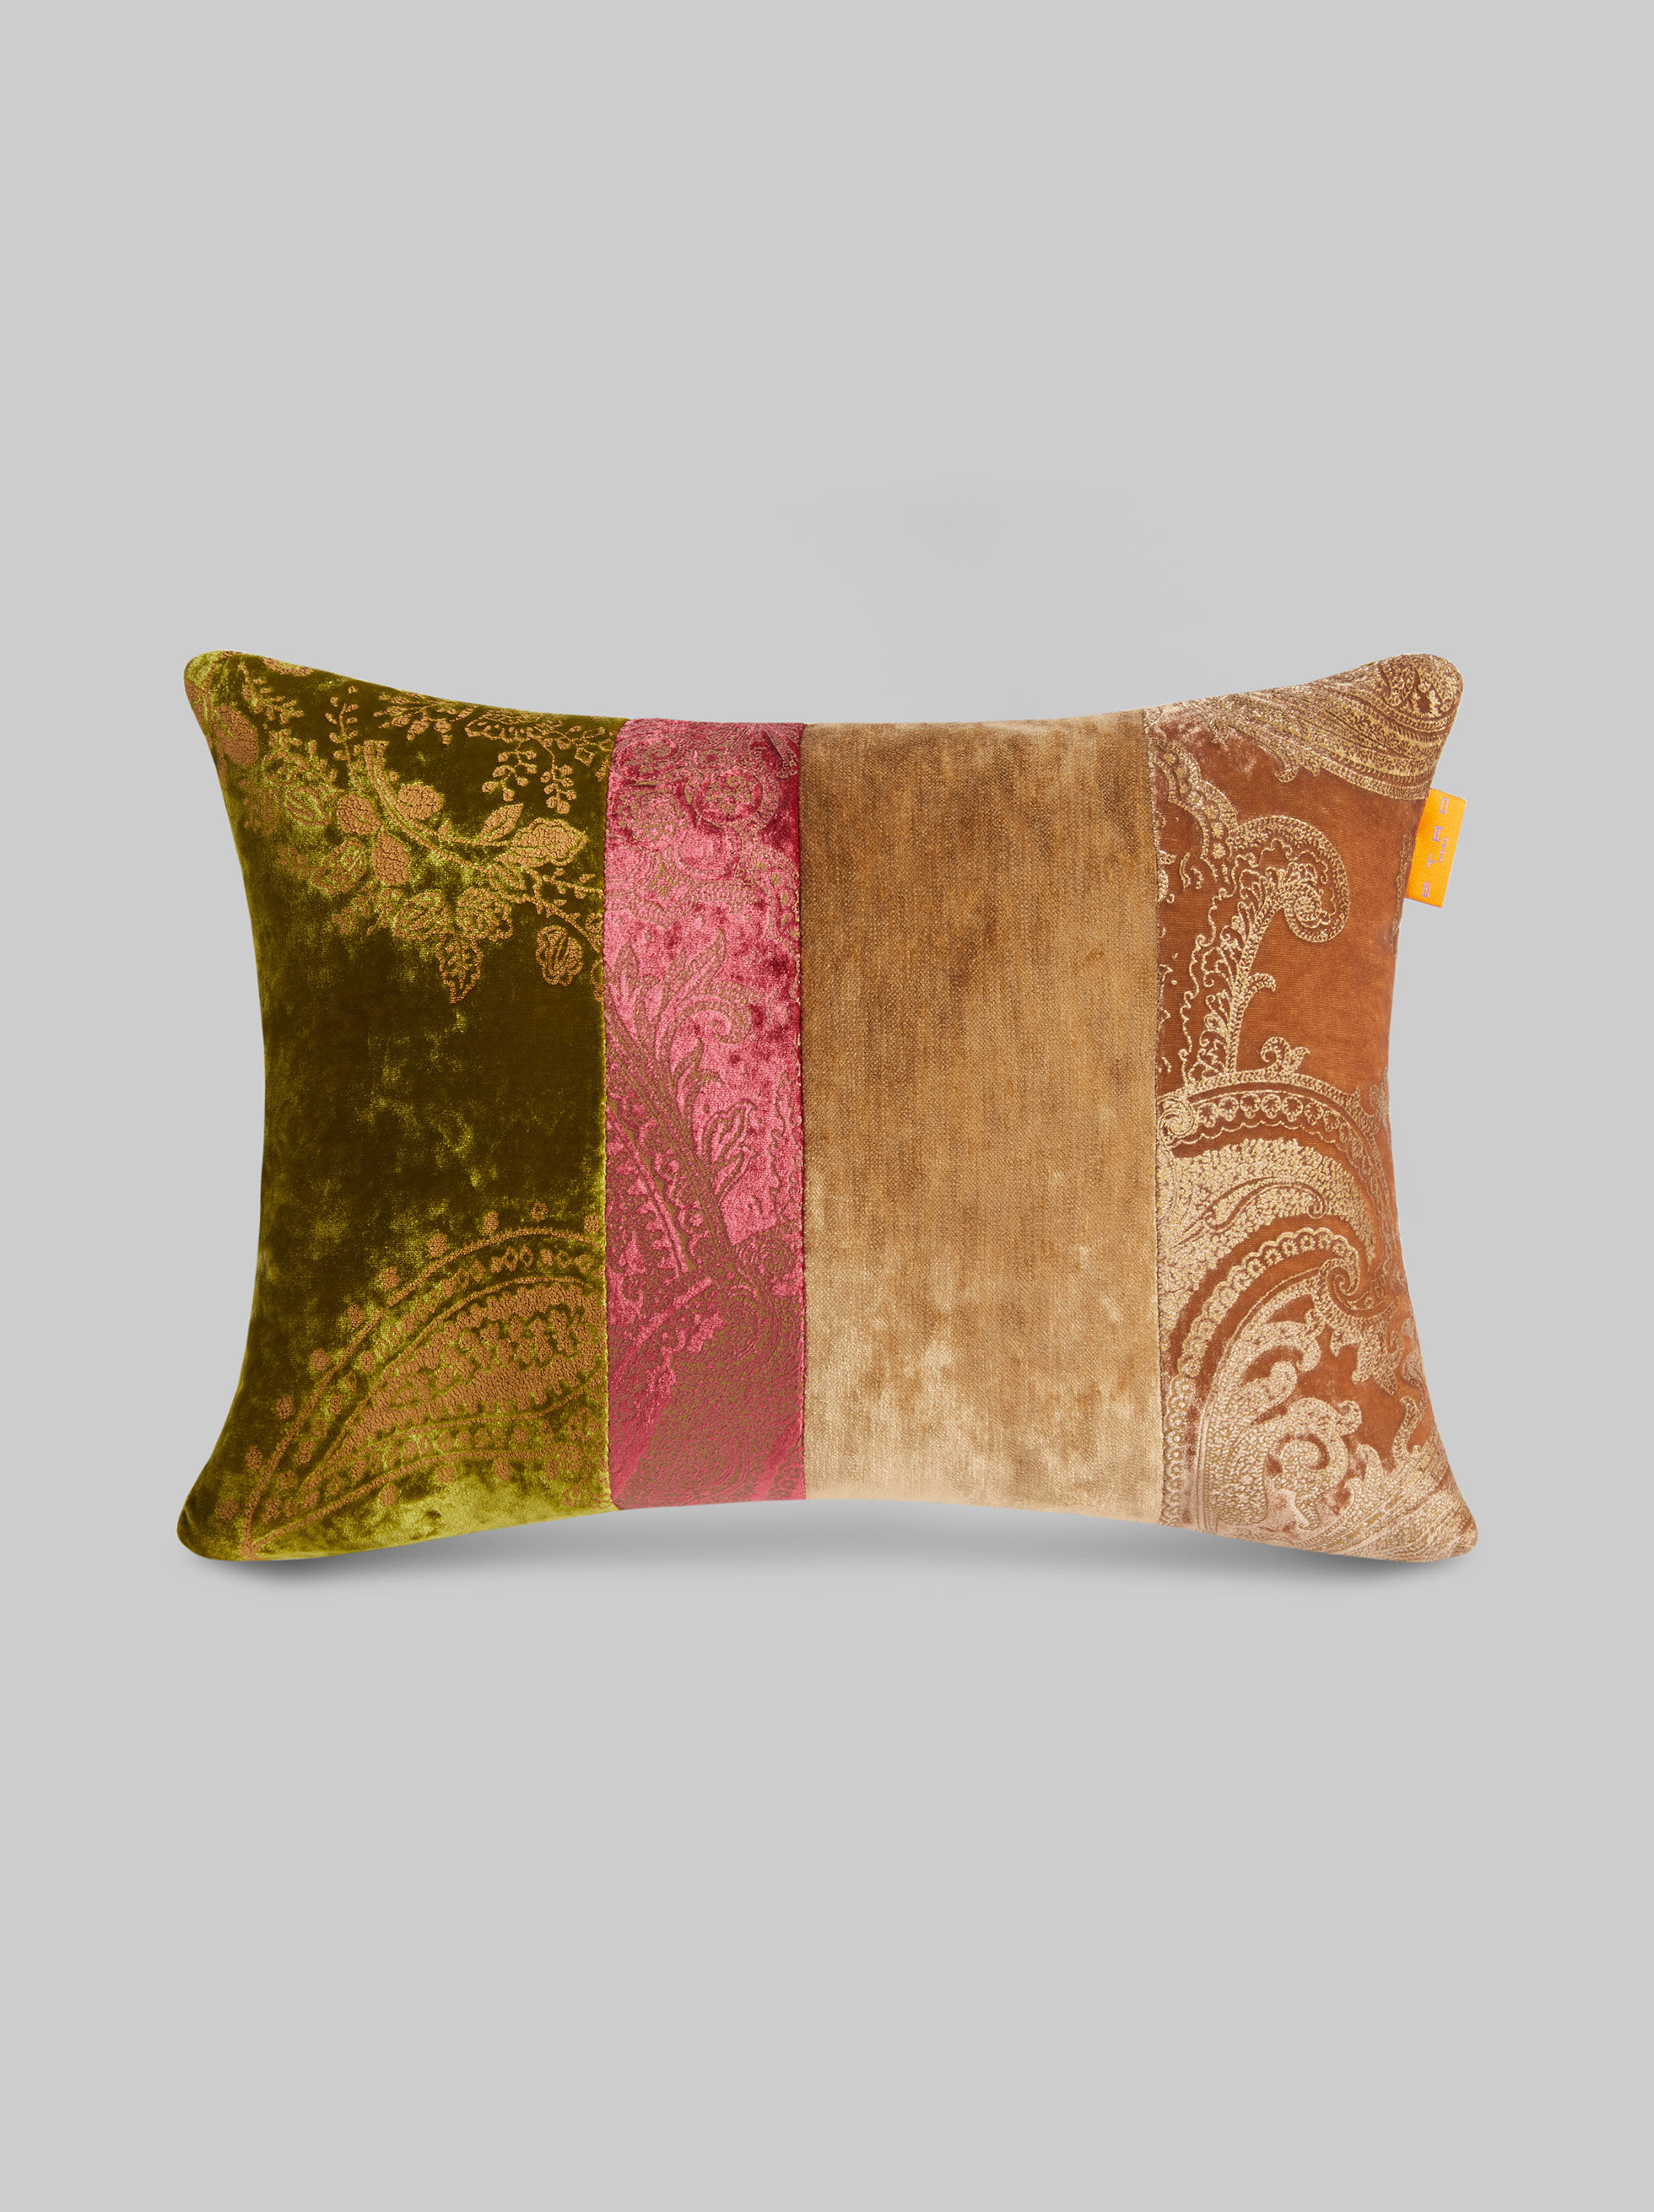 VELVET PATCHWORK THROW PILLOW